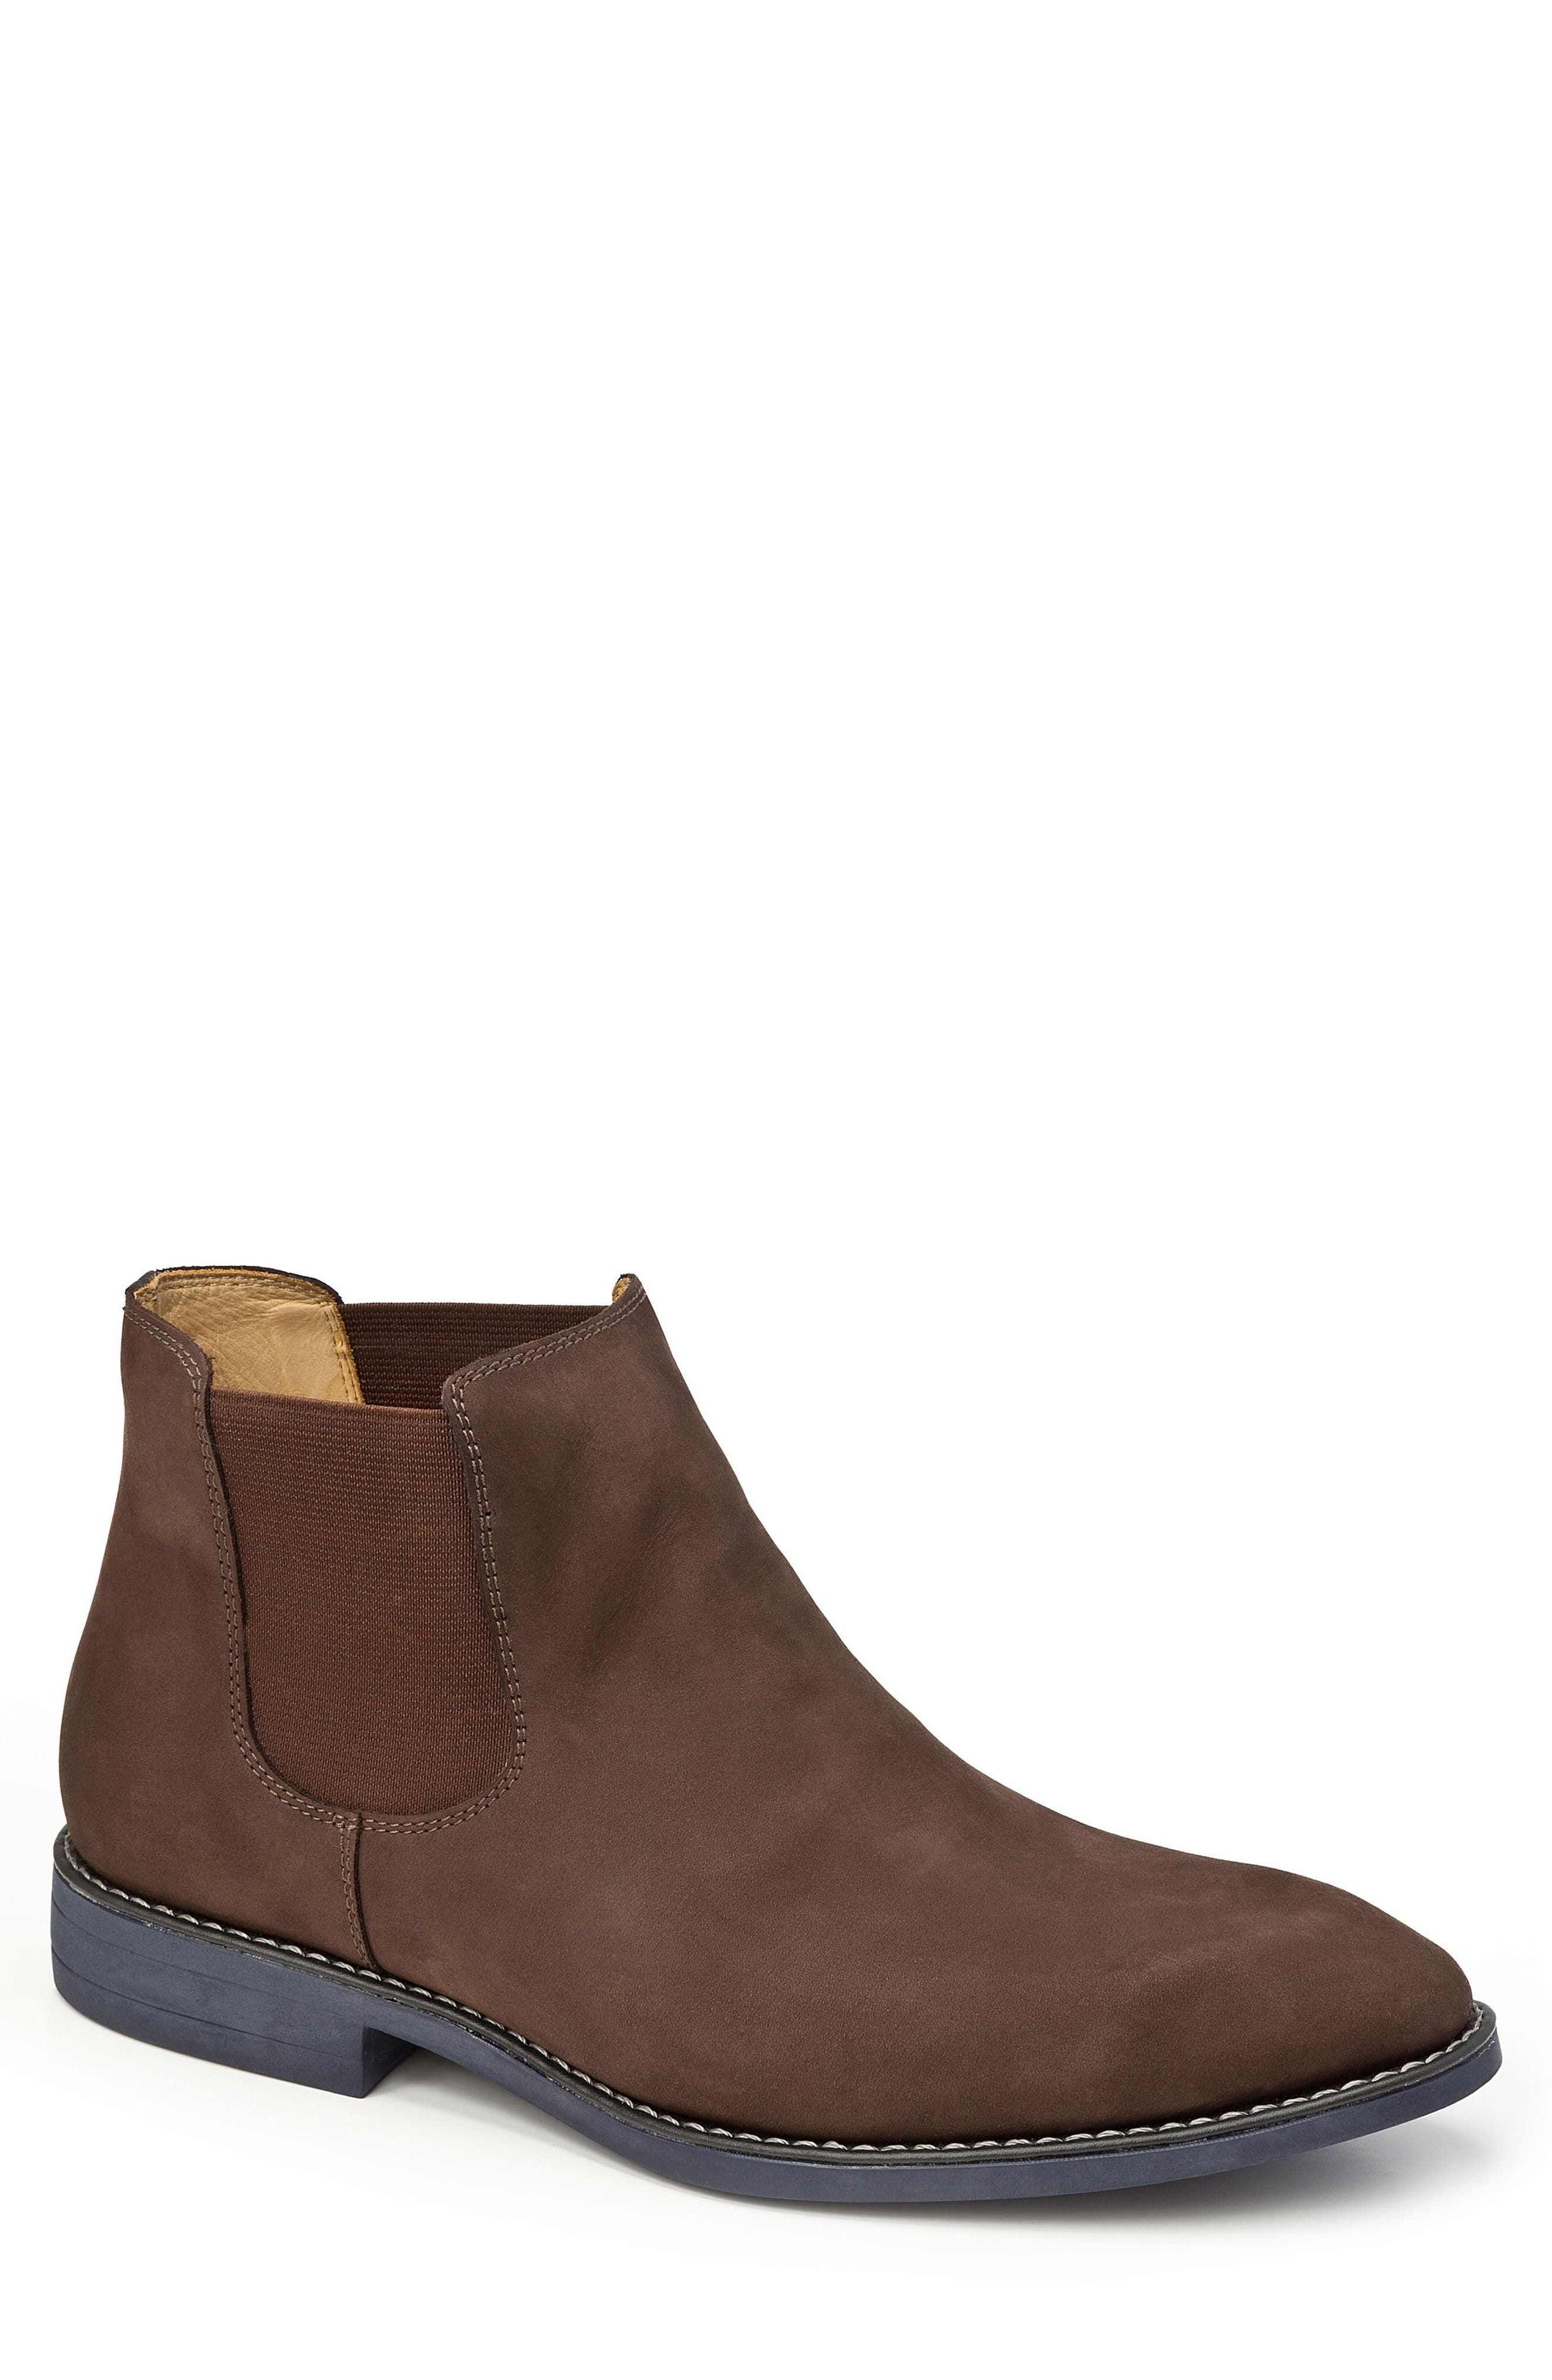 Marcus Chelsea Boot,                             Main thumbnail 1, color,                             Brown Nubuck Leather